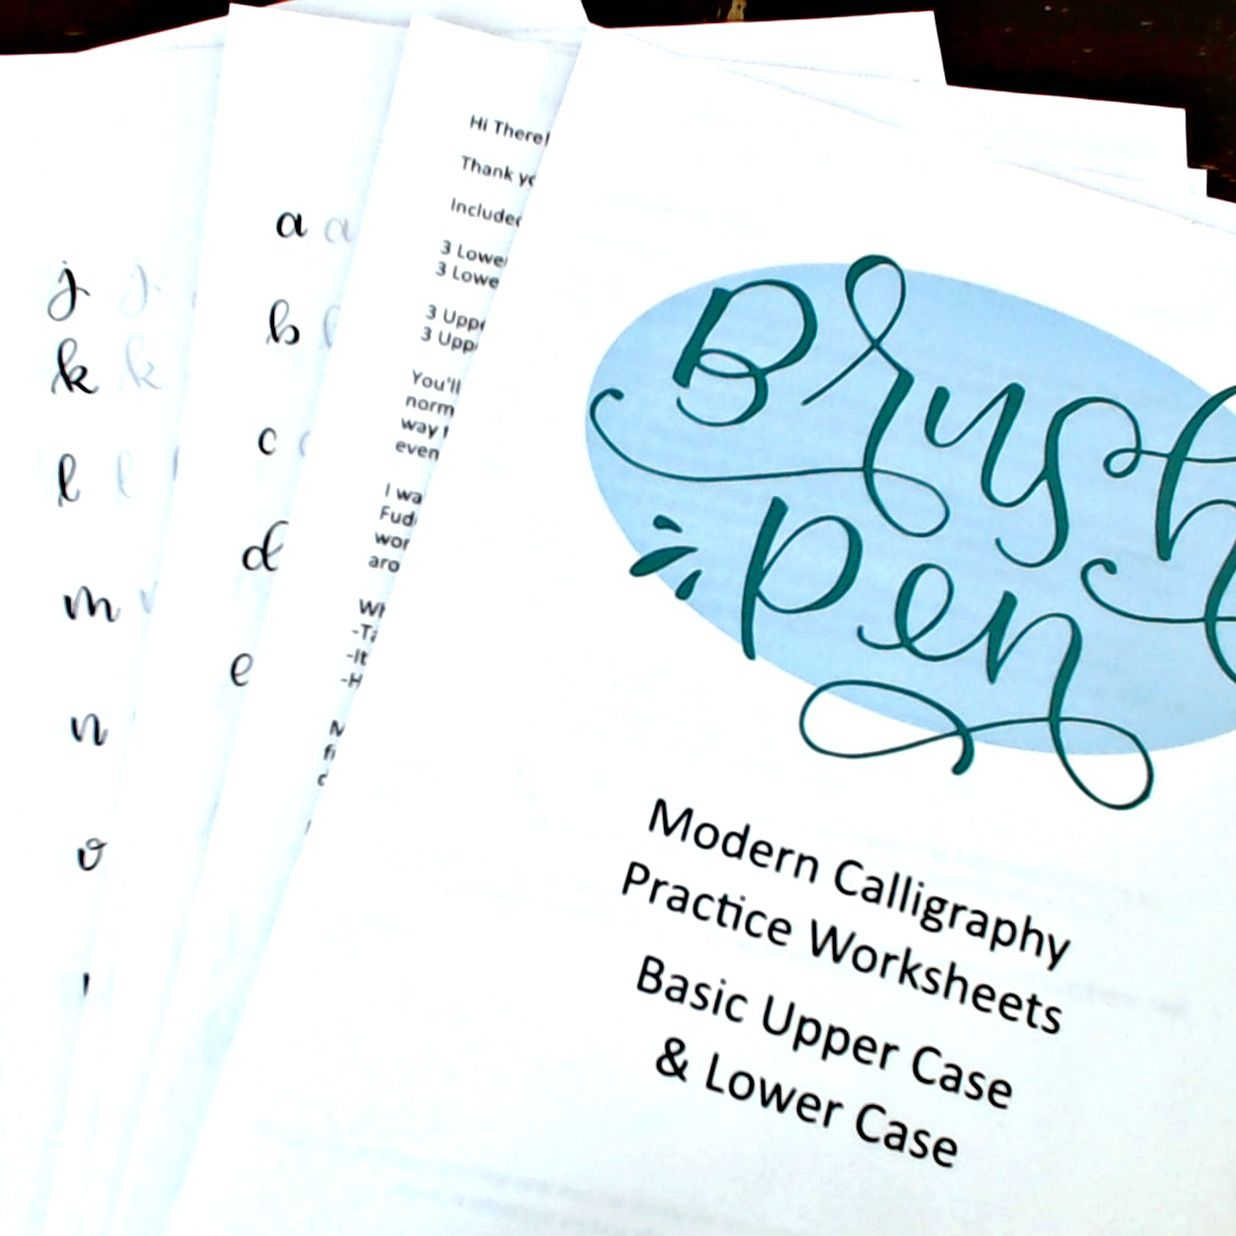 Brush Pen Modern Calligraphy Practice Worksheet Packet